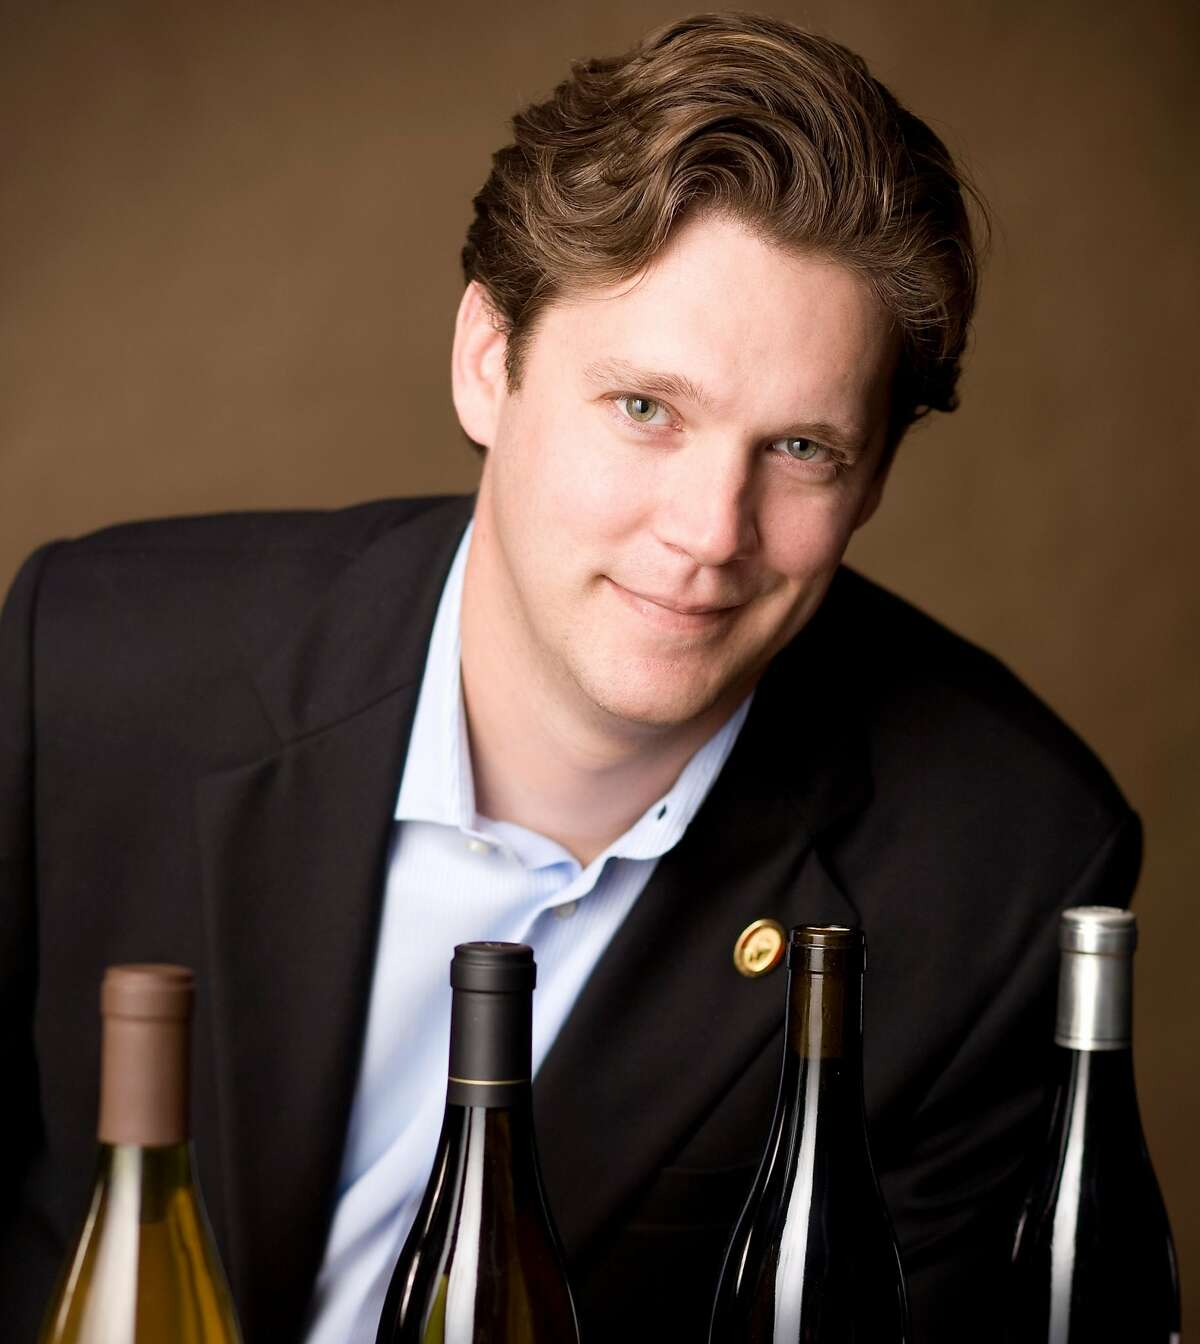 Geoff Kruth, pictured when he was the wine director of the Farmhouse Inn in Forestville (Sonoma County), has been accused of sexual misconduct, according to the New York Times.